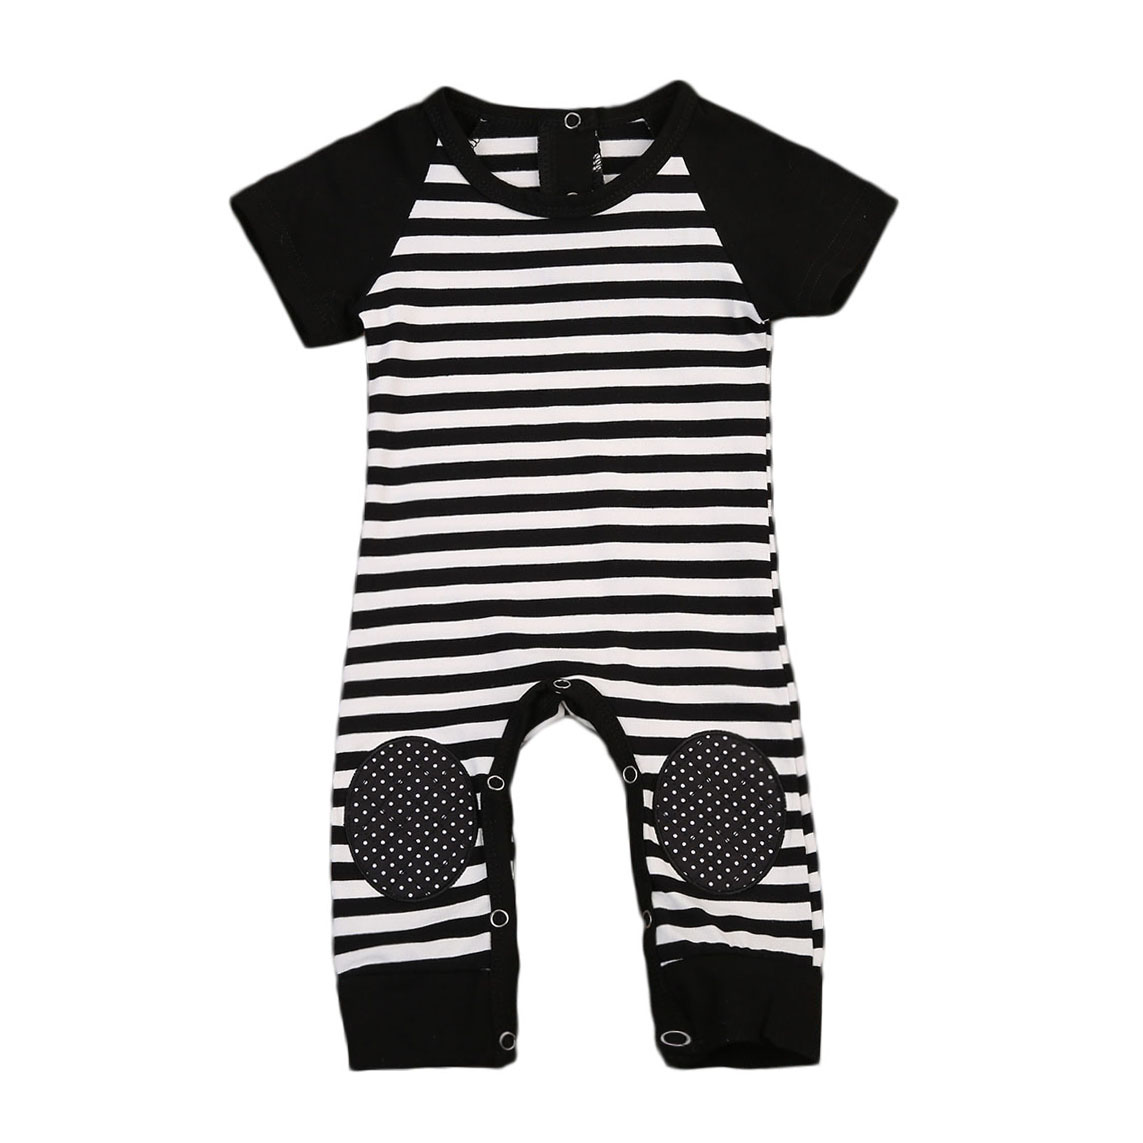 Newborn Infant Baby Boys Girls Romper Jumpsuit Warm Clothes Outfits Toddler Boy Girl Rompers Striped Cotton Soft Casual Brief newborn infant baby boys girls kids clothing cotton romper jumpsuit colorful warm zipper rompers baby girl clothes outfit